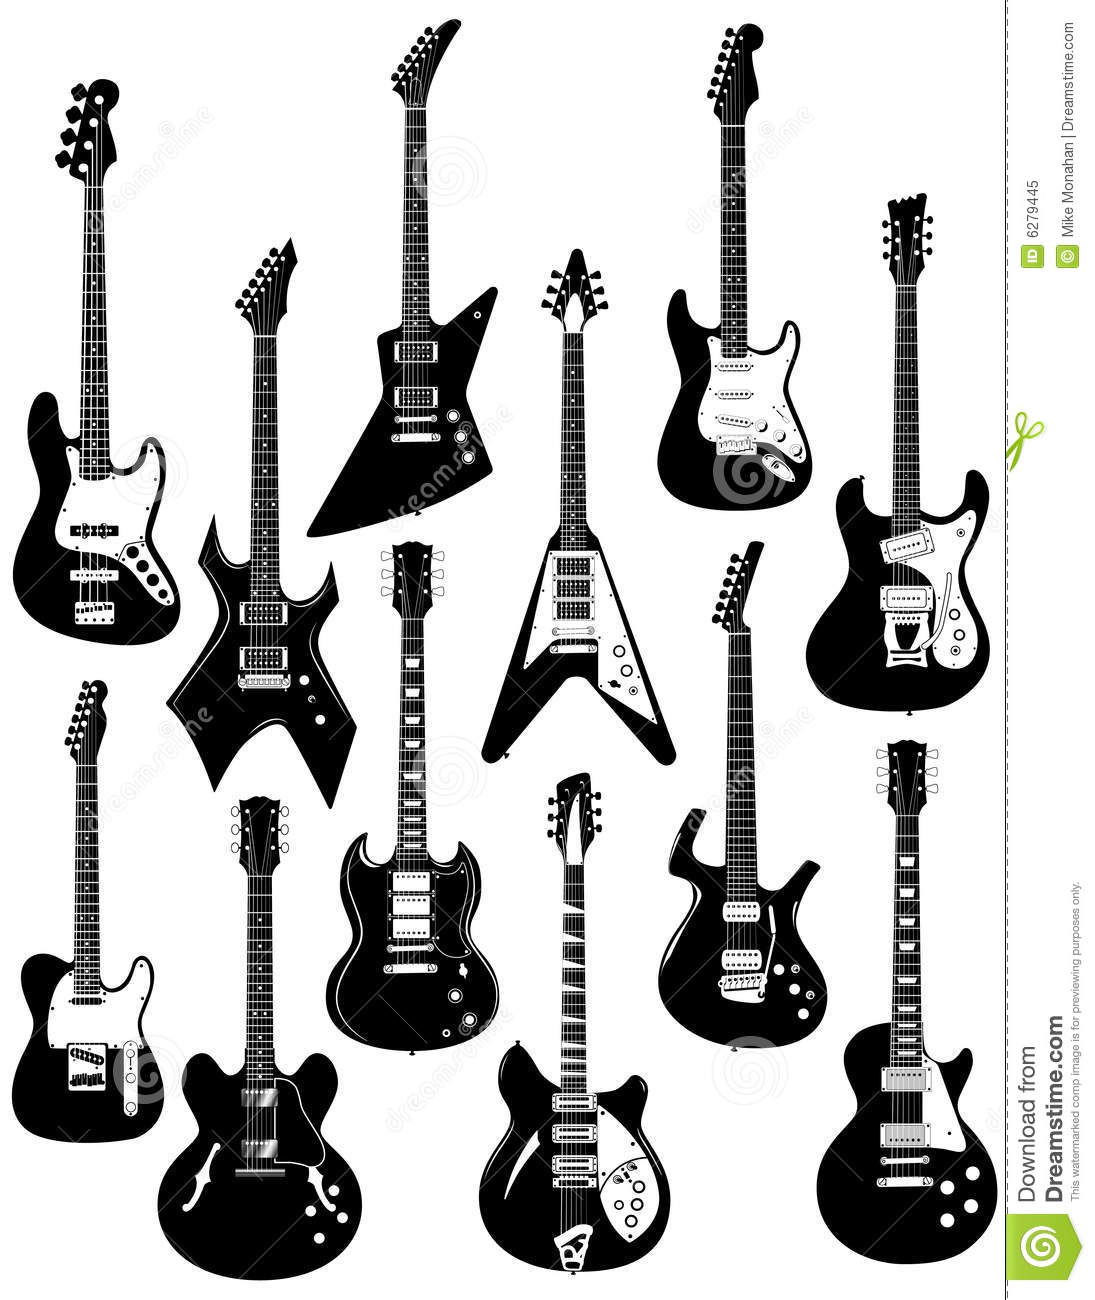 Electric Guitars On White Royalty Free Stock Photo